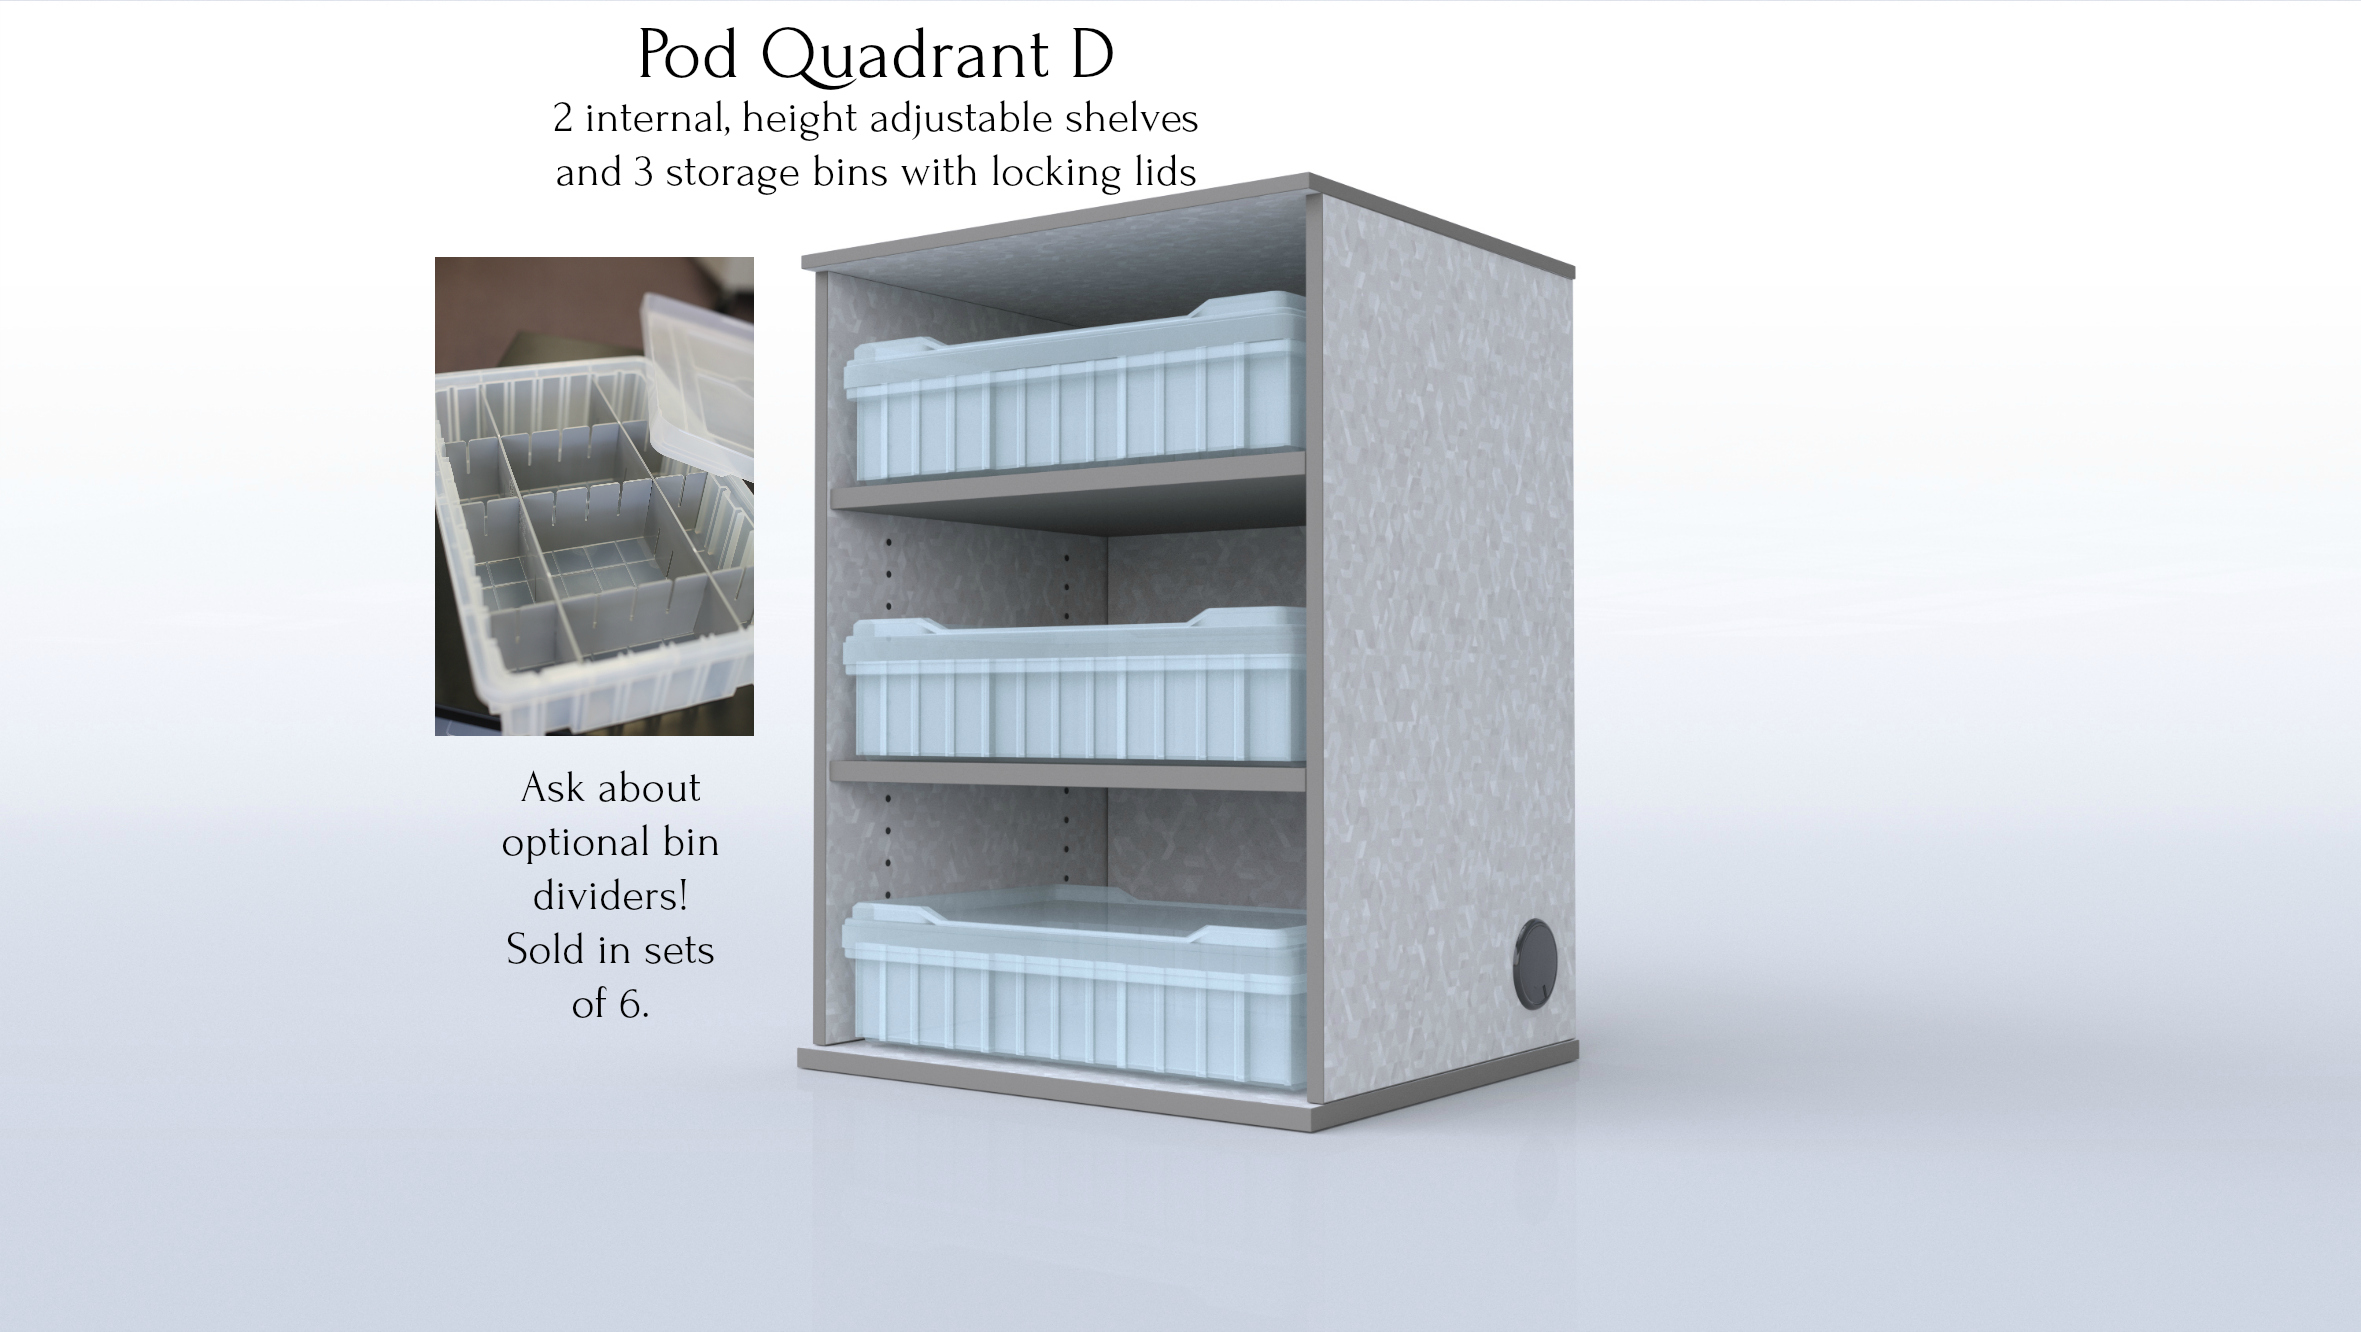 CEF Pod Quadrant D with bin dividers.jpg